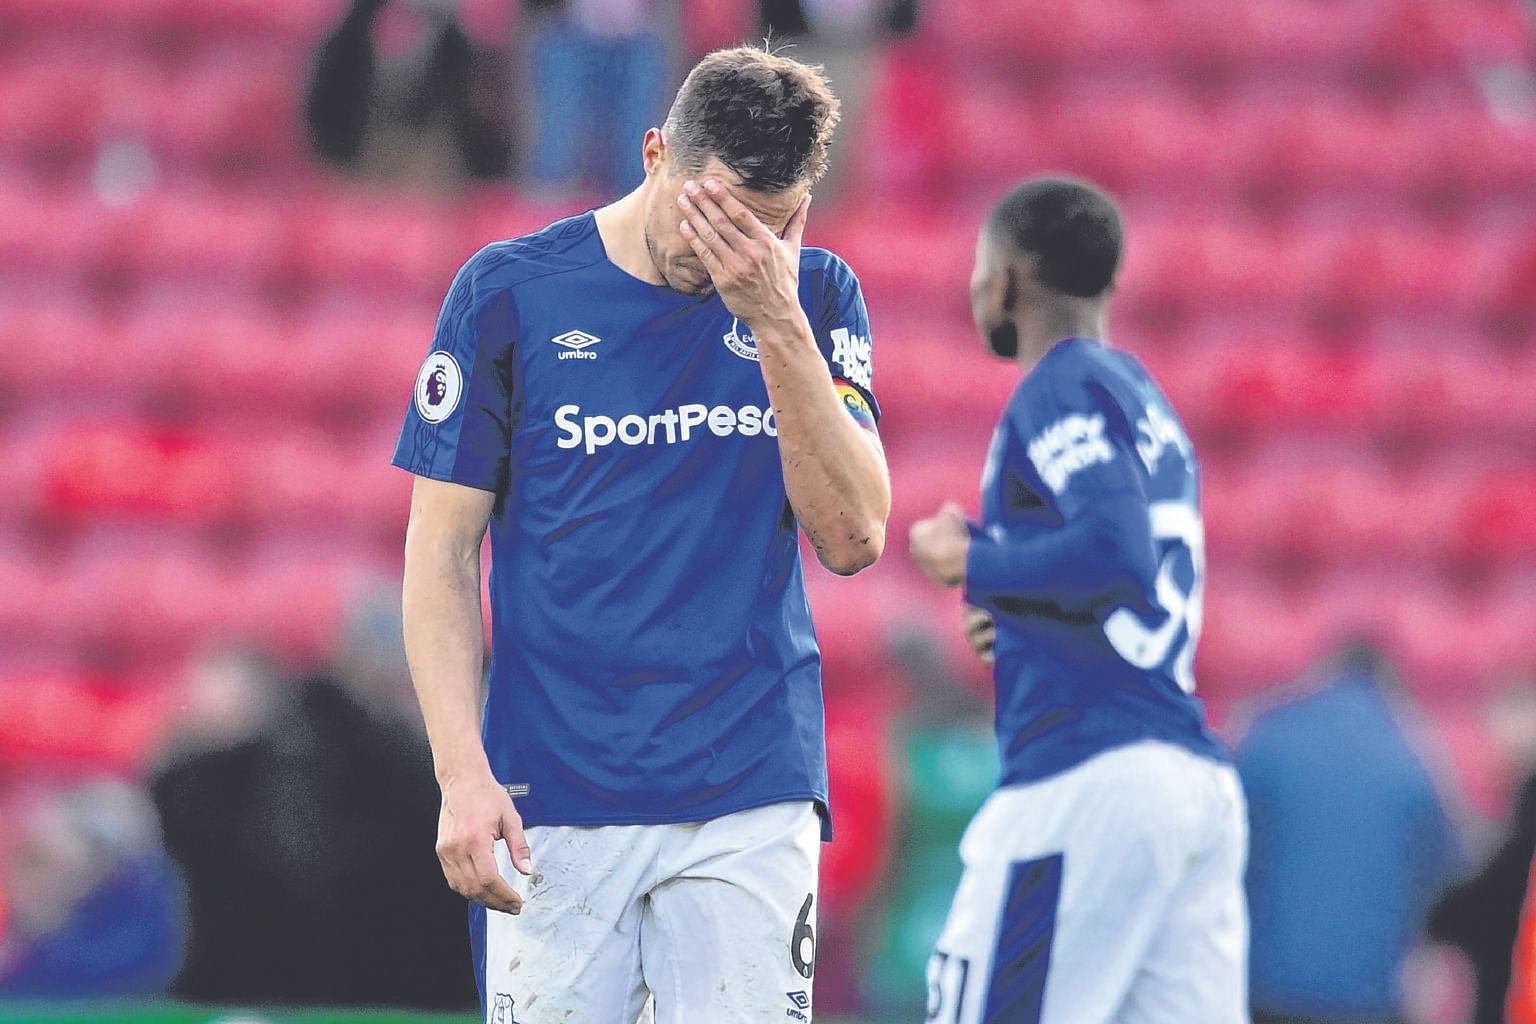 Everton's Phil Jagielka casts a forlorn figure after their 4-1 collapse at Southampton on Sunday. Senior players have not matched the hunger shown by caretaker David Unsworth in the dugout.